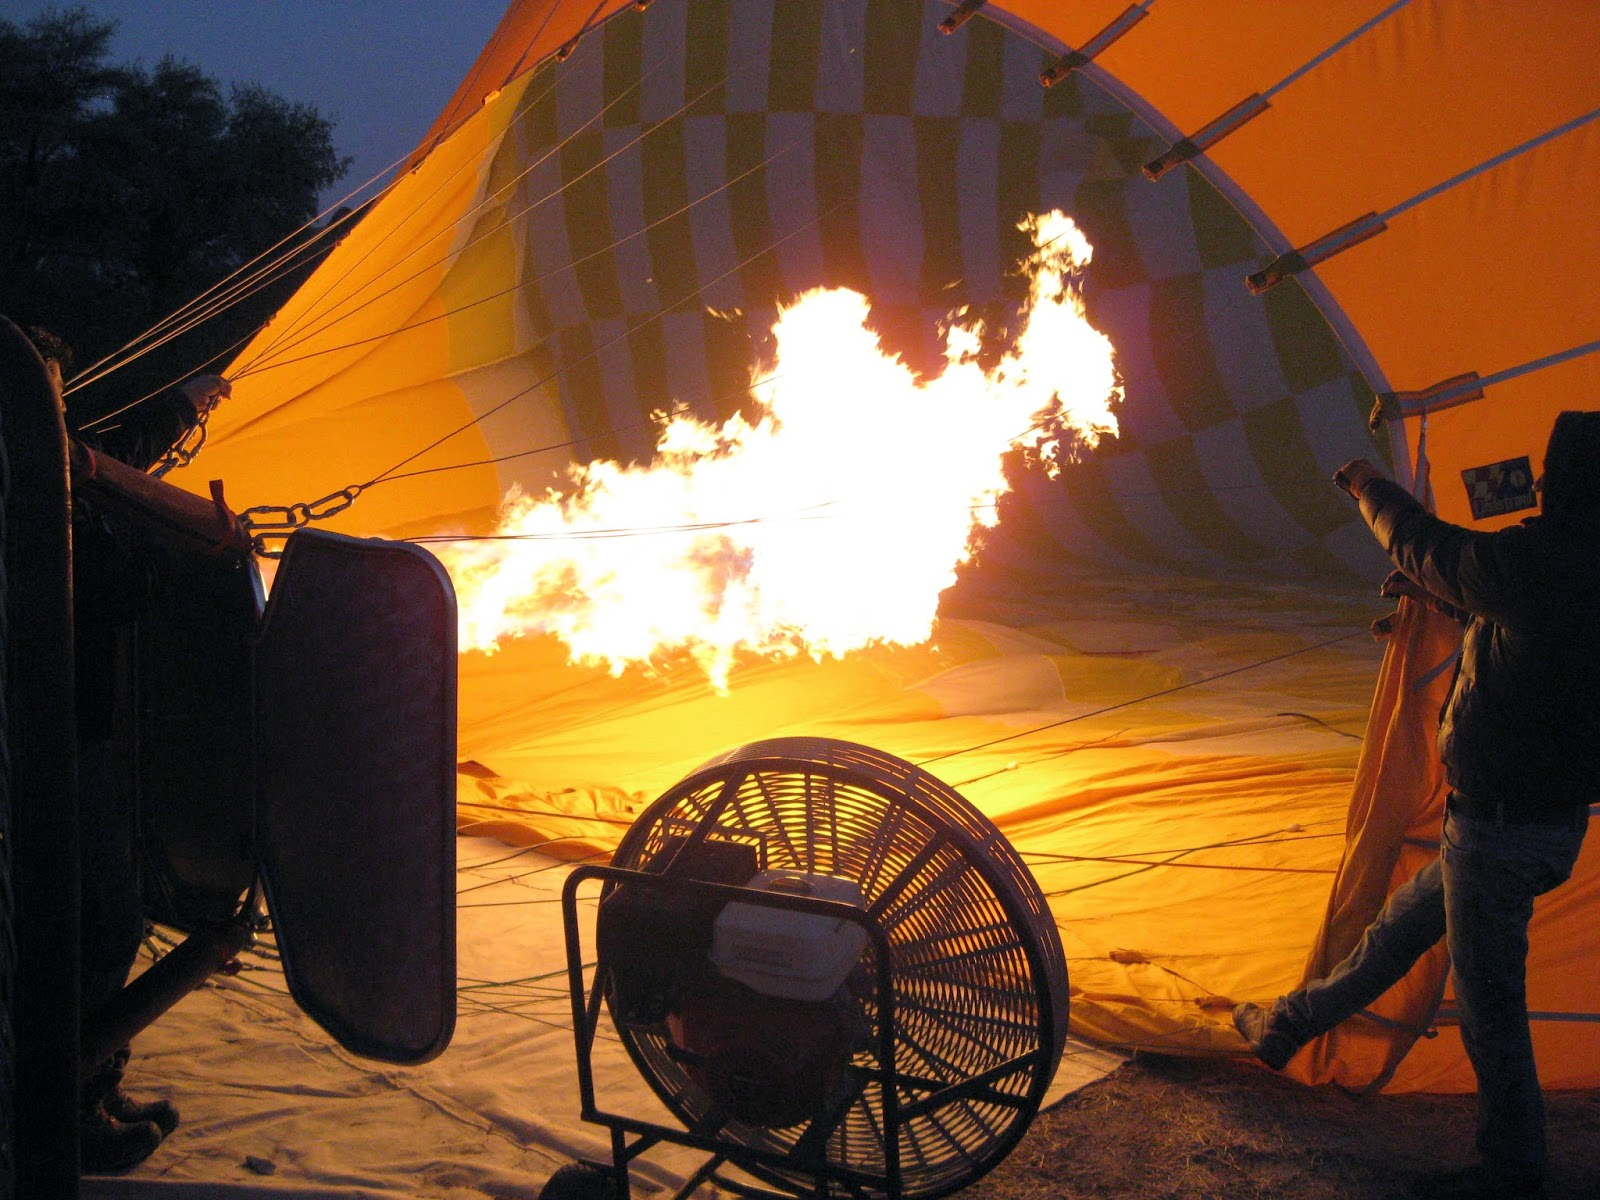 Cappadocia - Firing up the hot air balloon